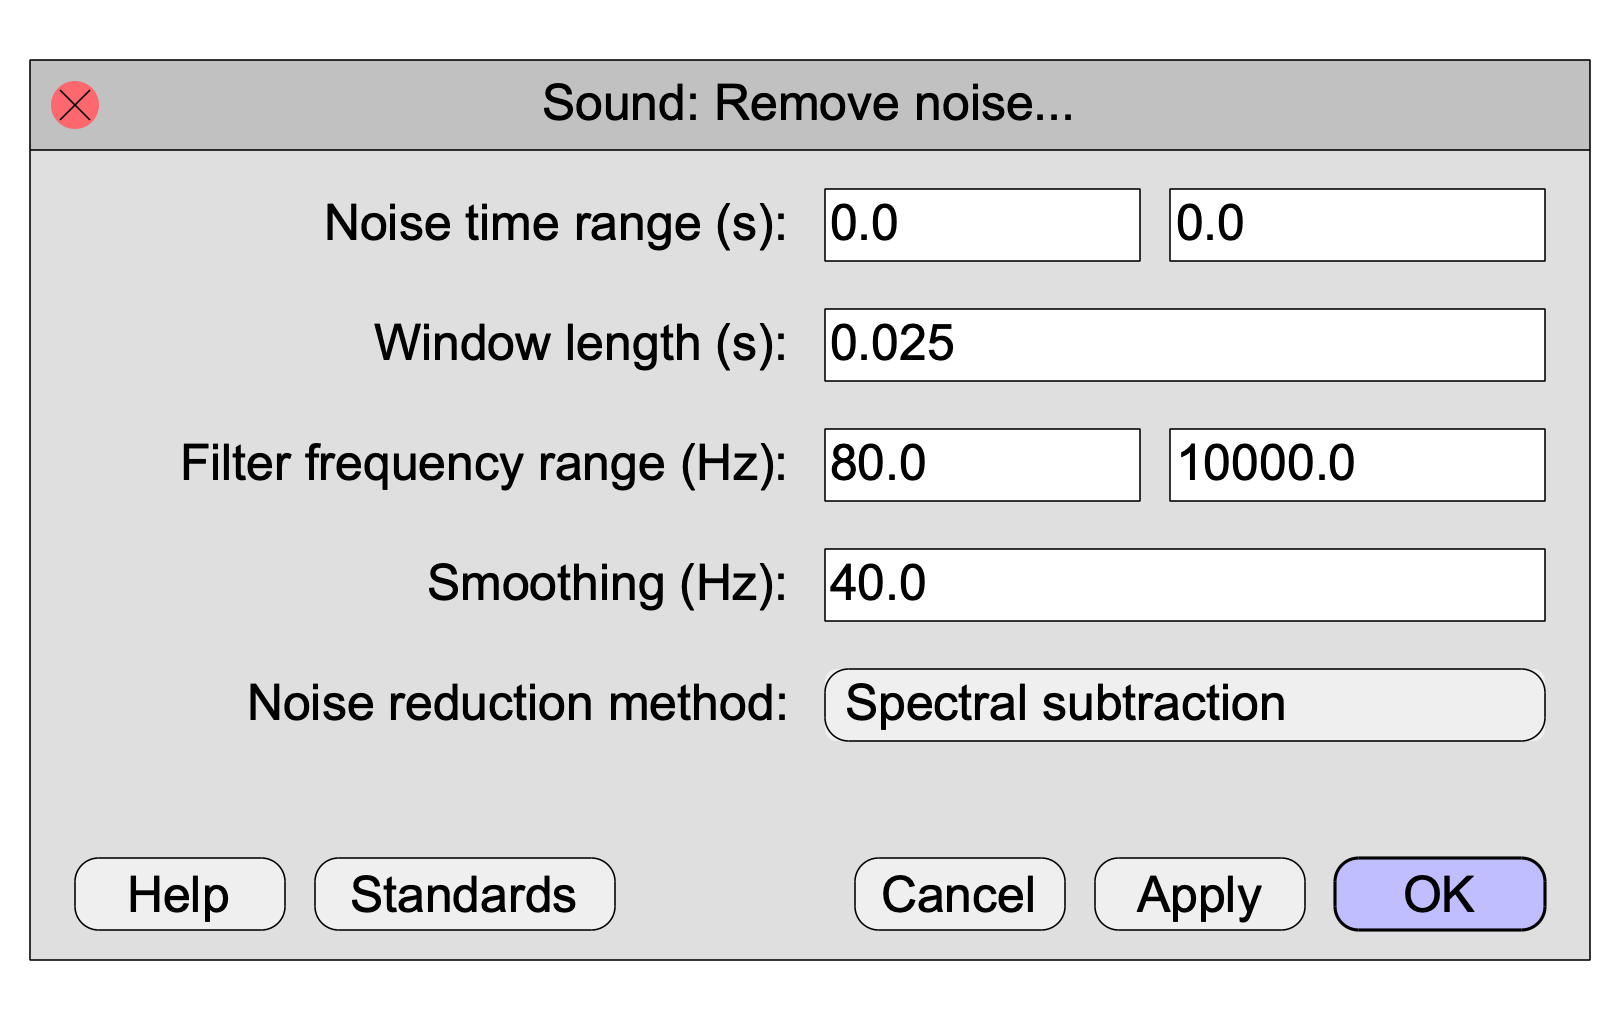 Sound: Remove noise